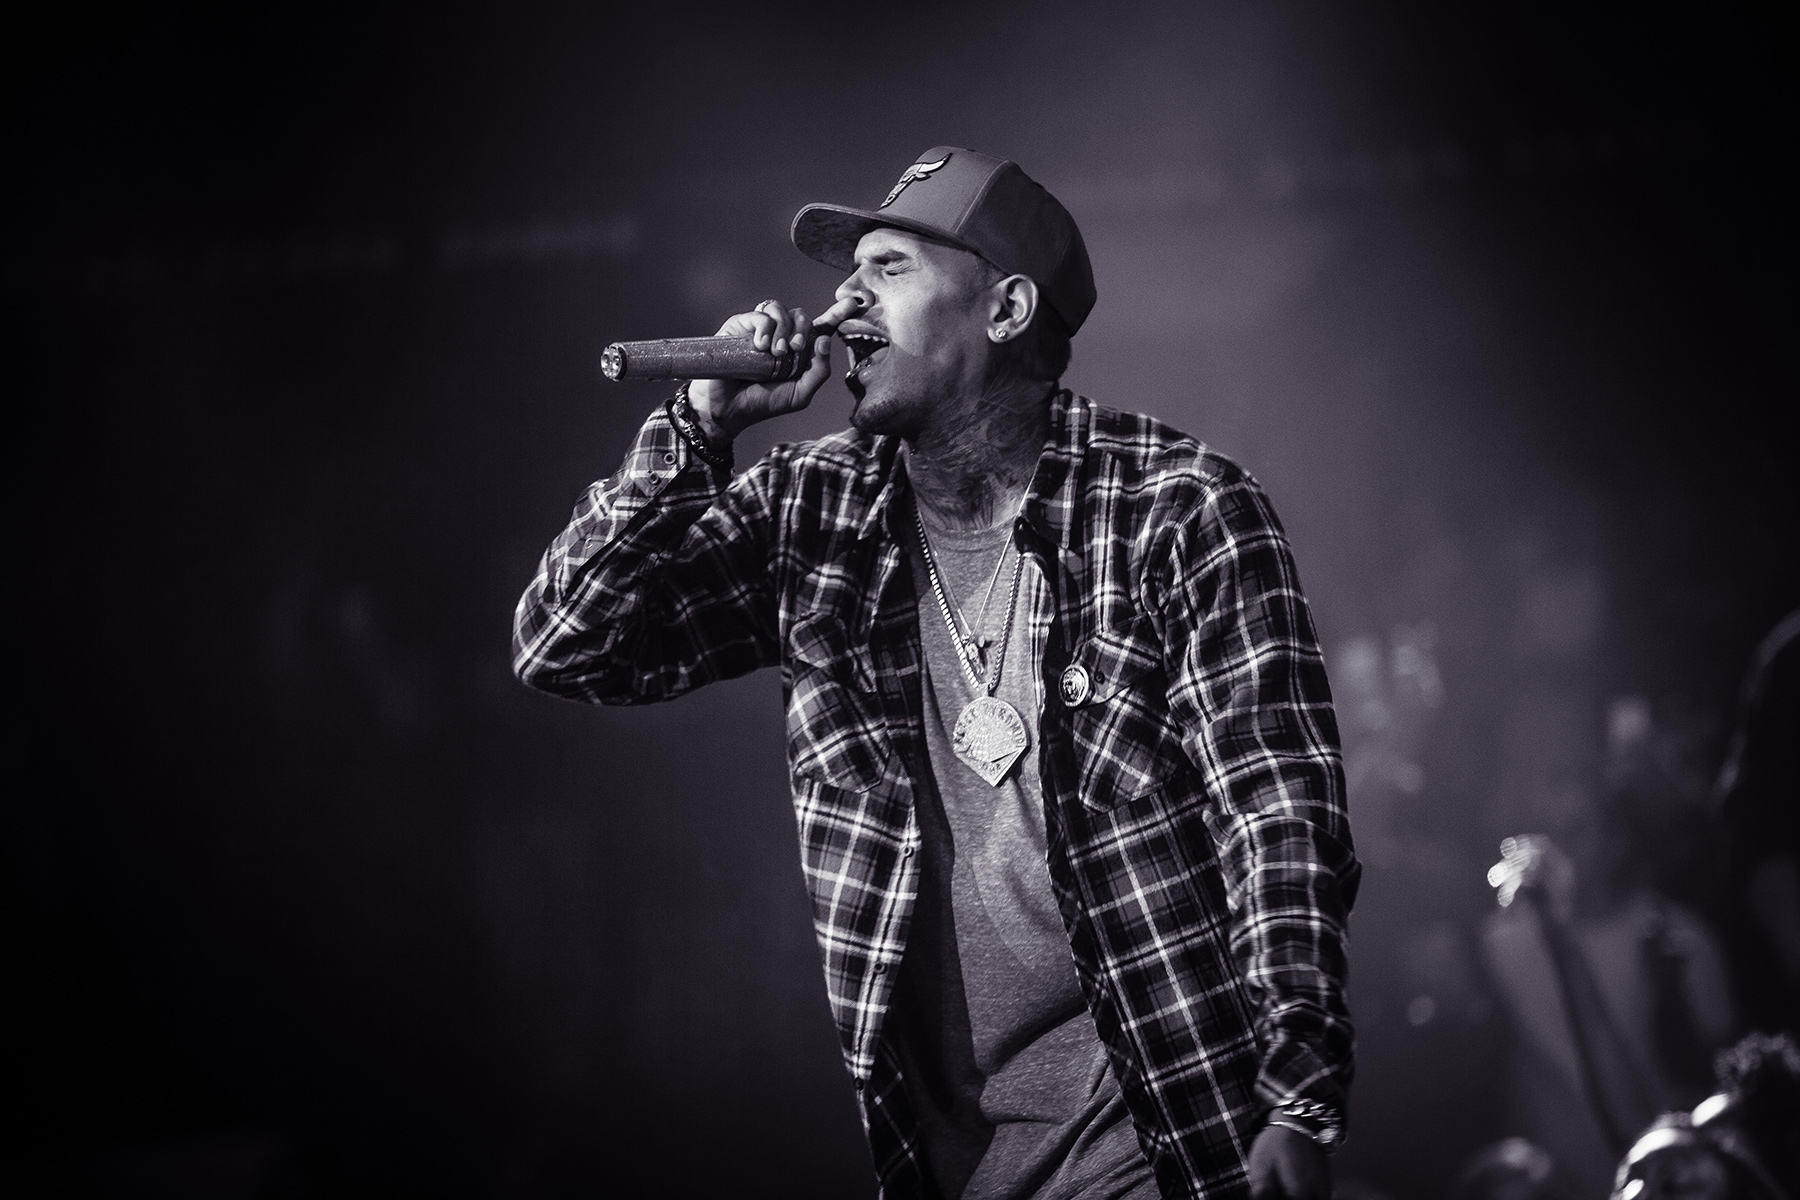 Chris Brown live at Drai's